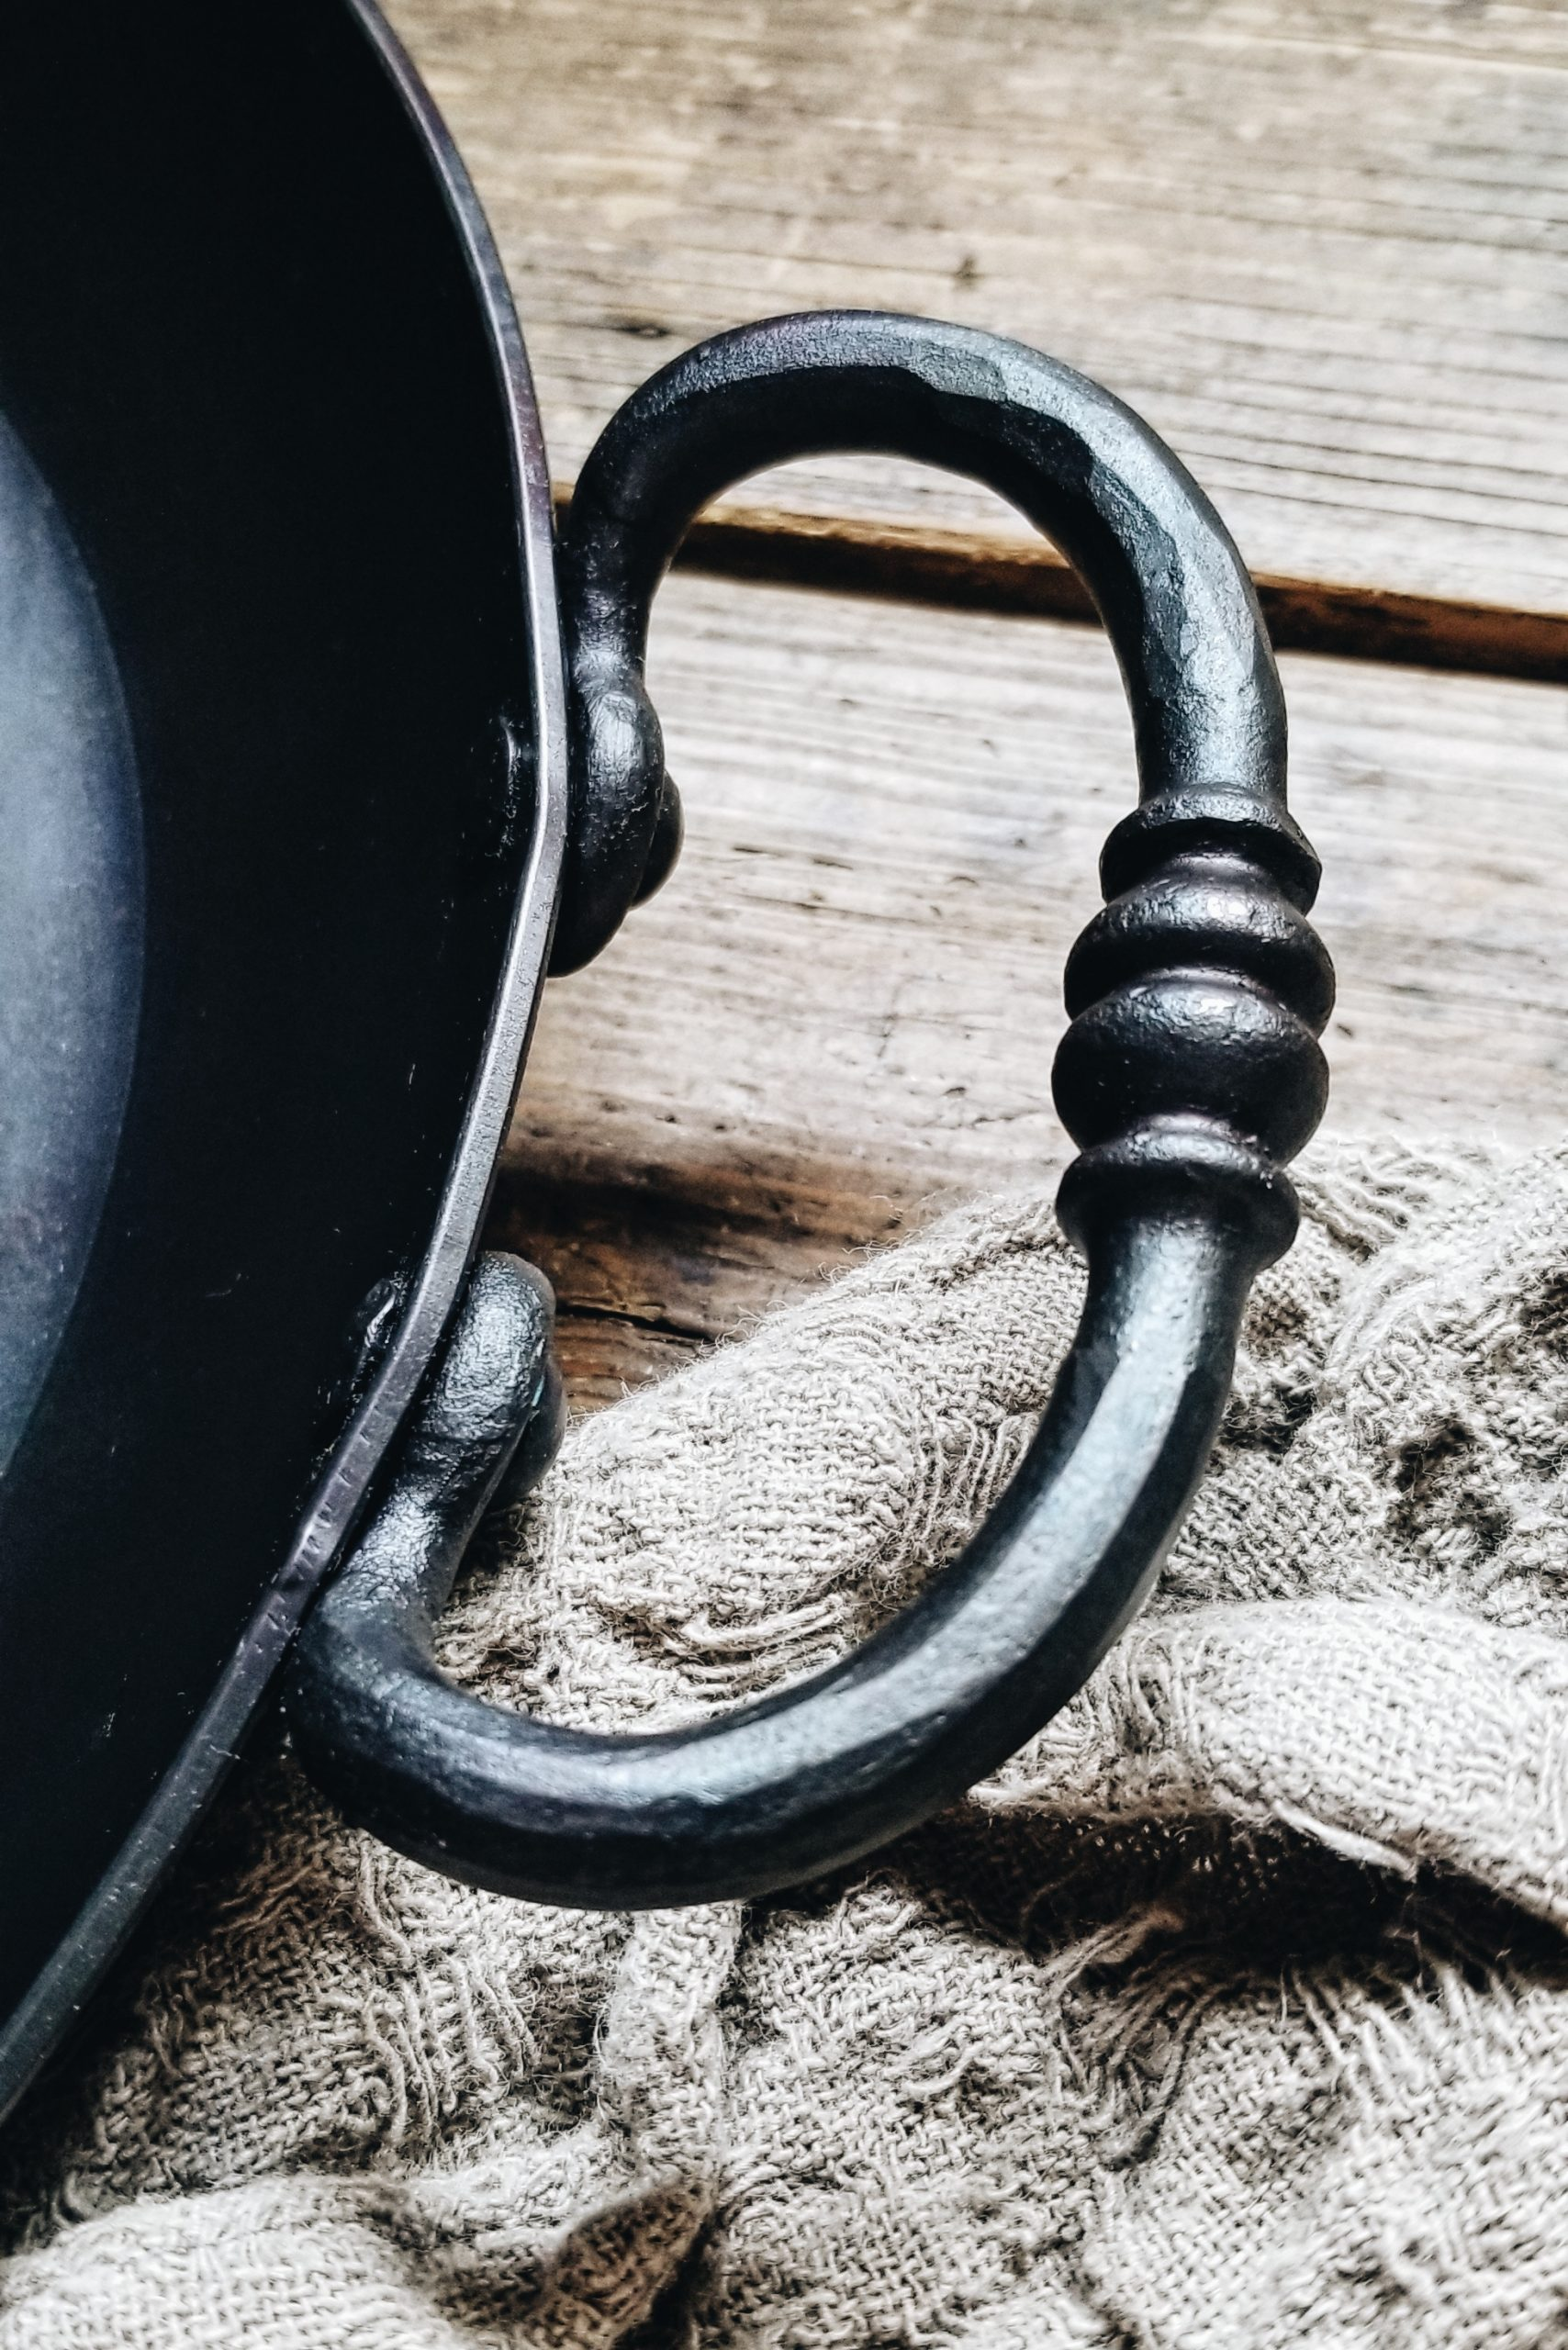 Bleu Forged Skillet FavIcon